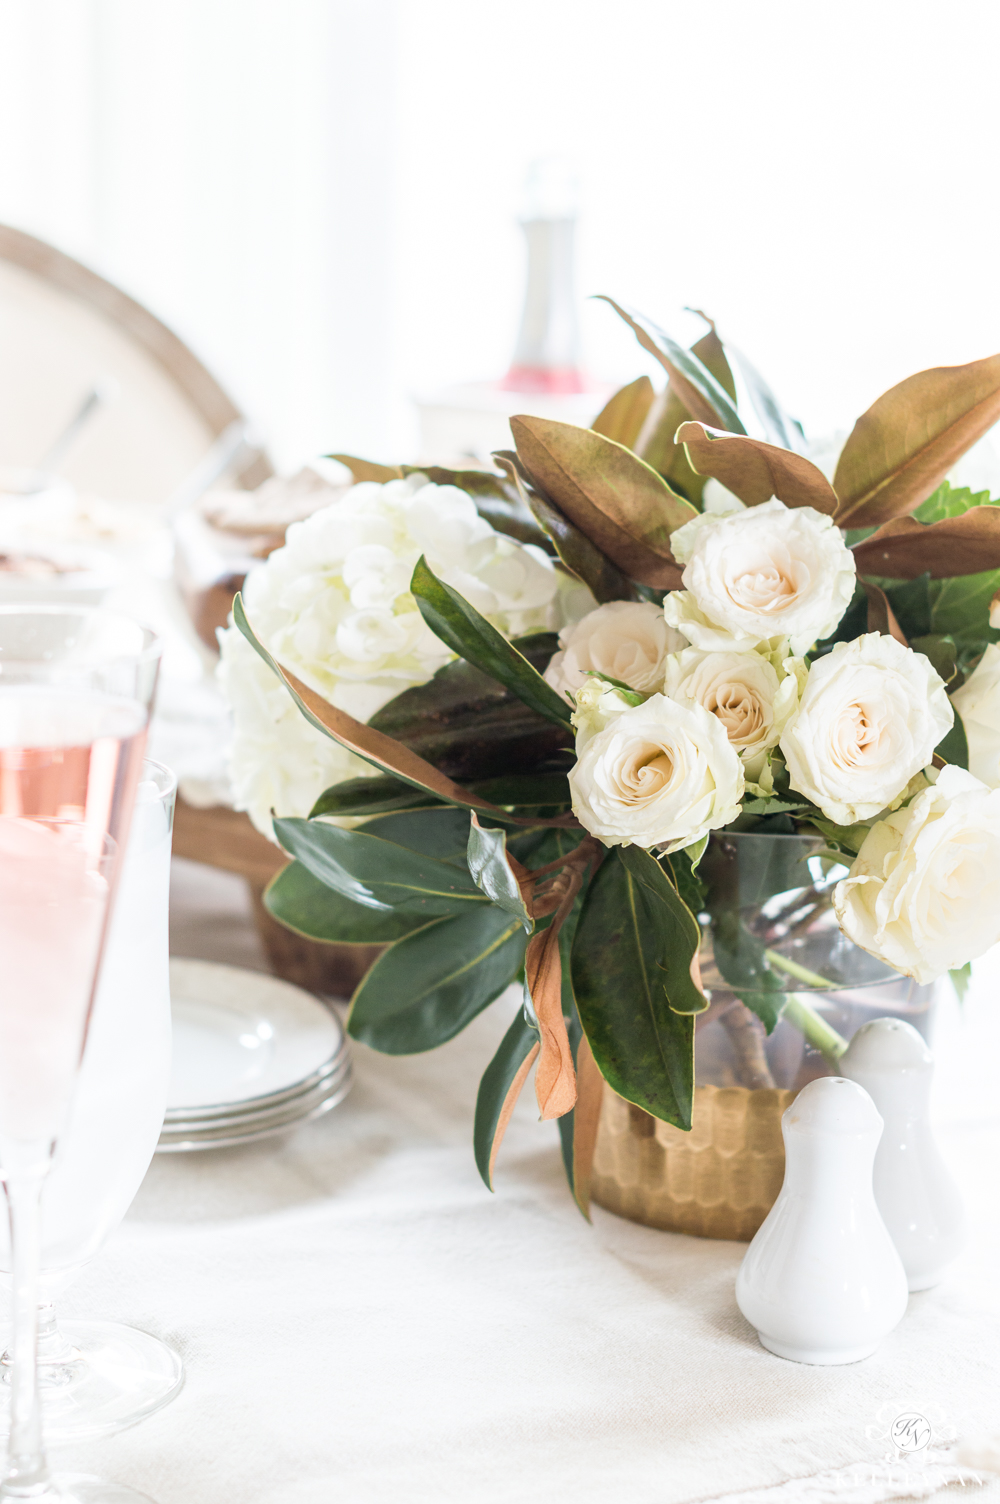 Rose, hydrangea, and Magnolia leaf table centerpiece for a Galentine's luncheon